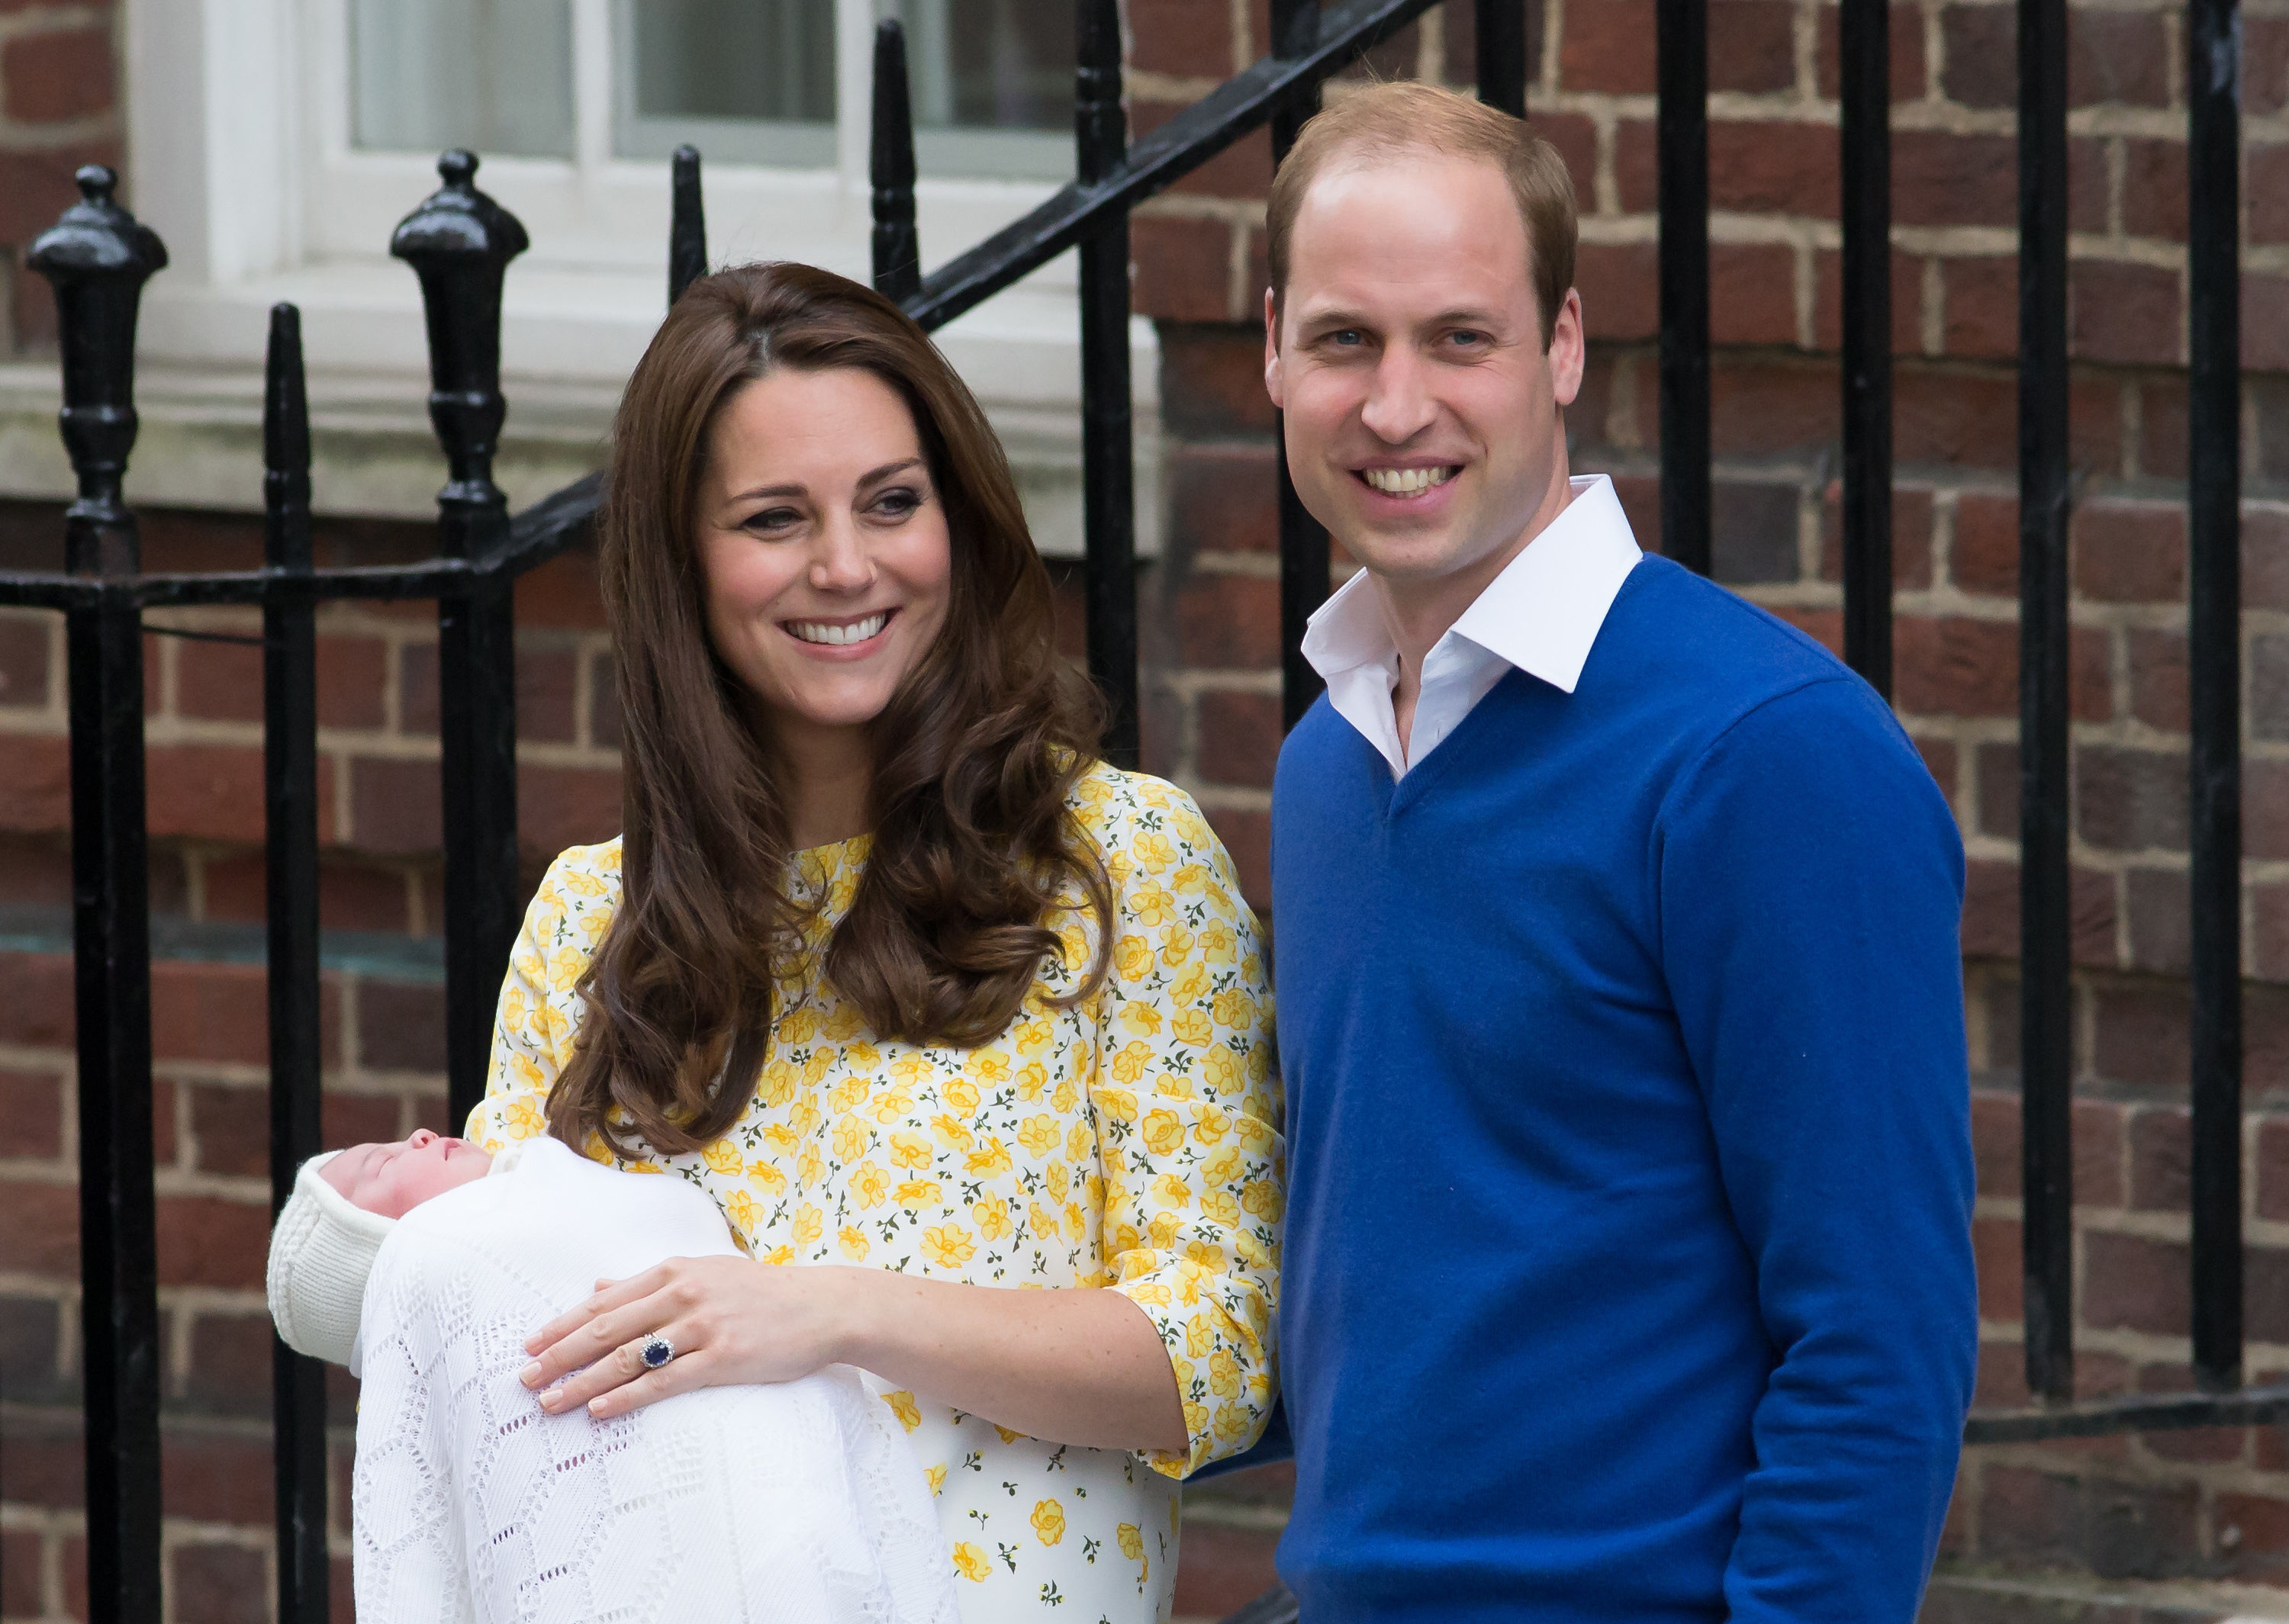 The Duchess of Cambridge is pregnant with her third child: Kensington Palace